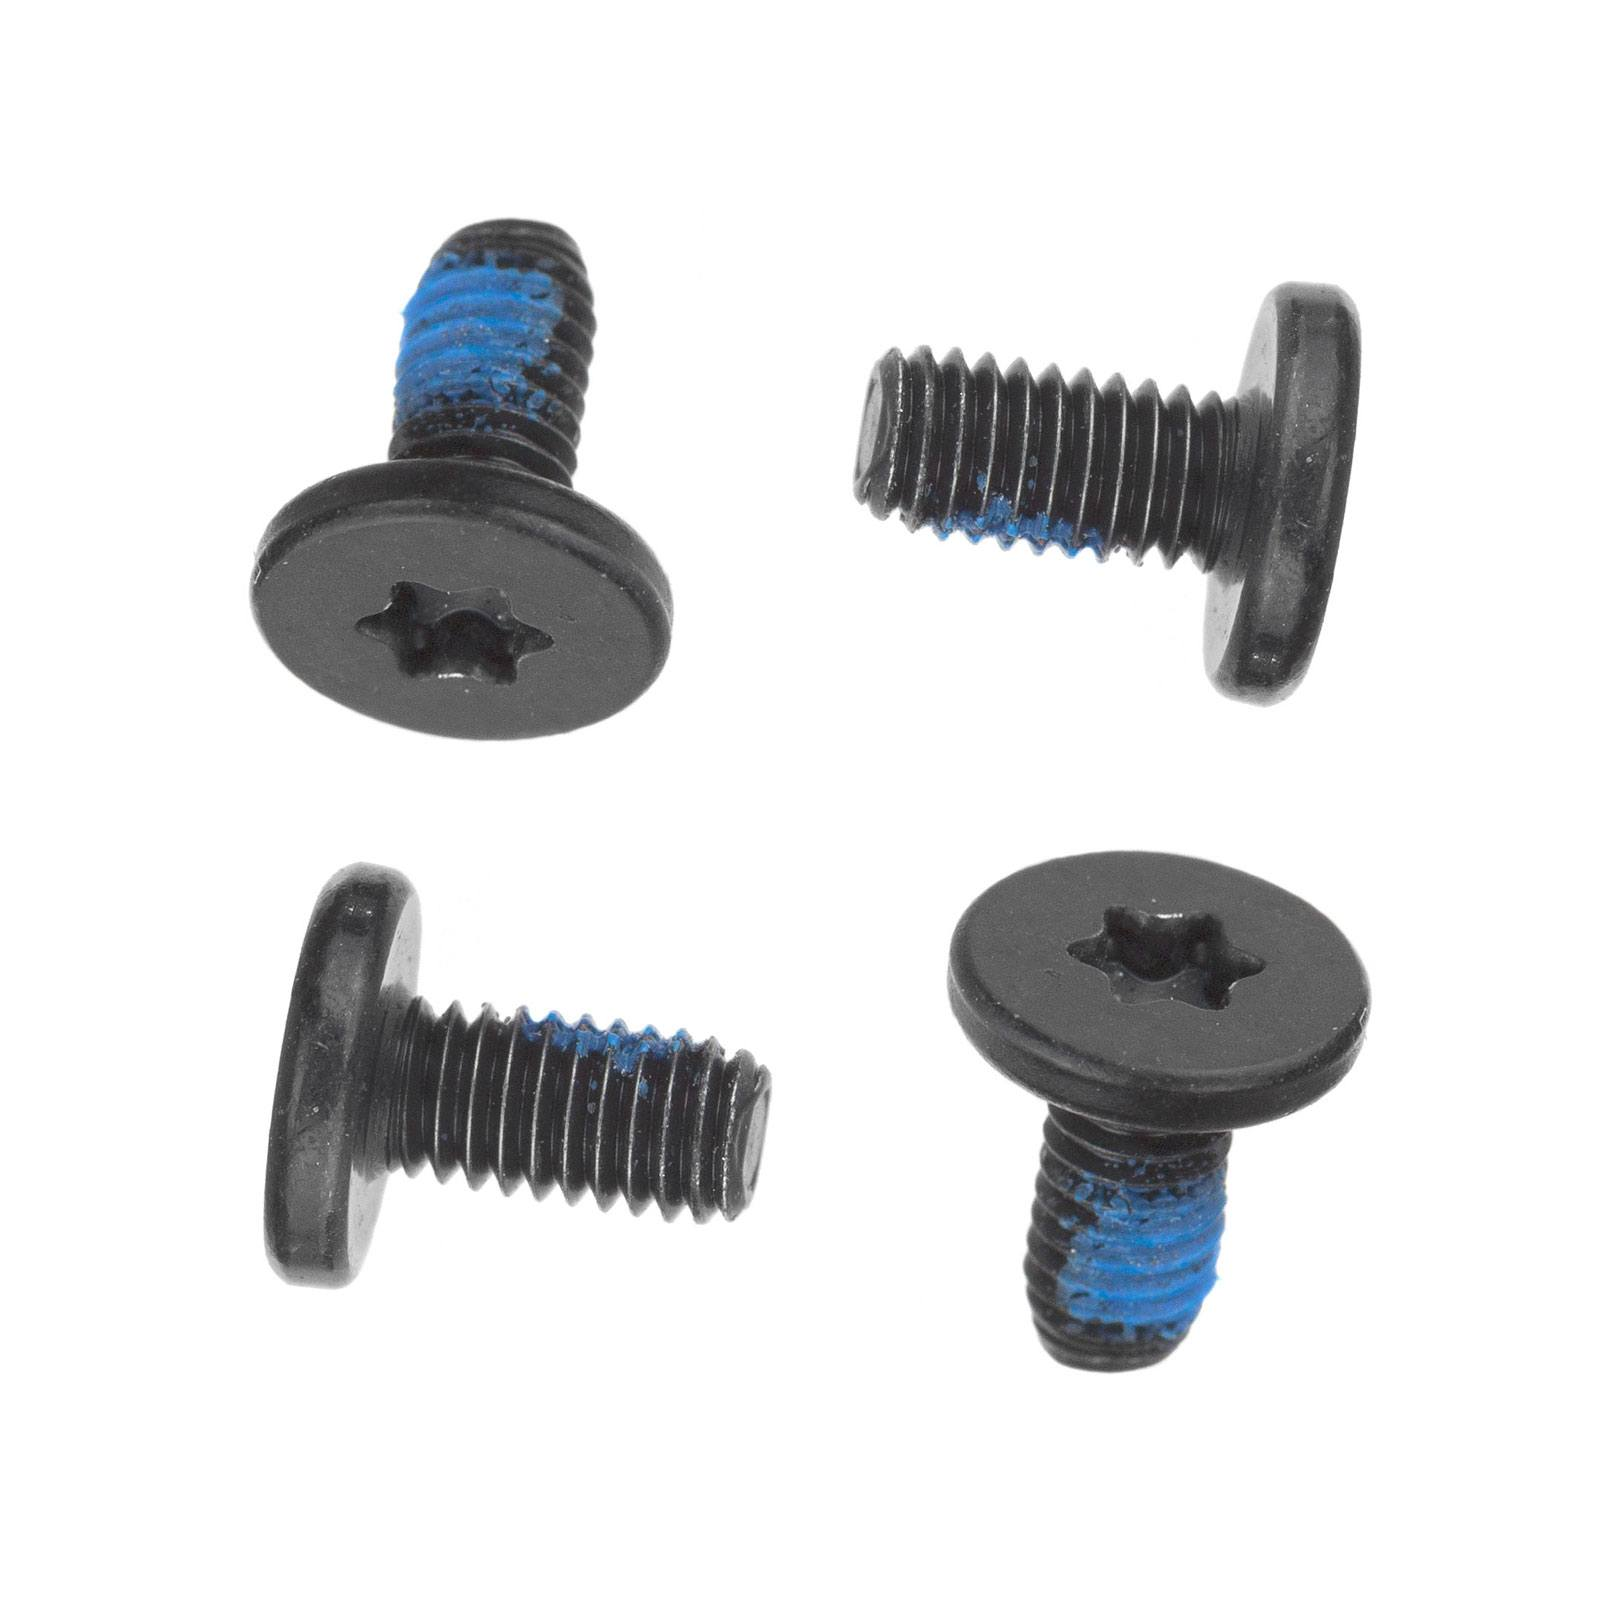 Logic Board Screws (T10 Torx)